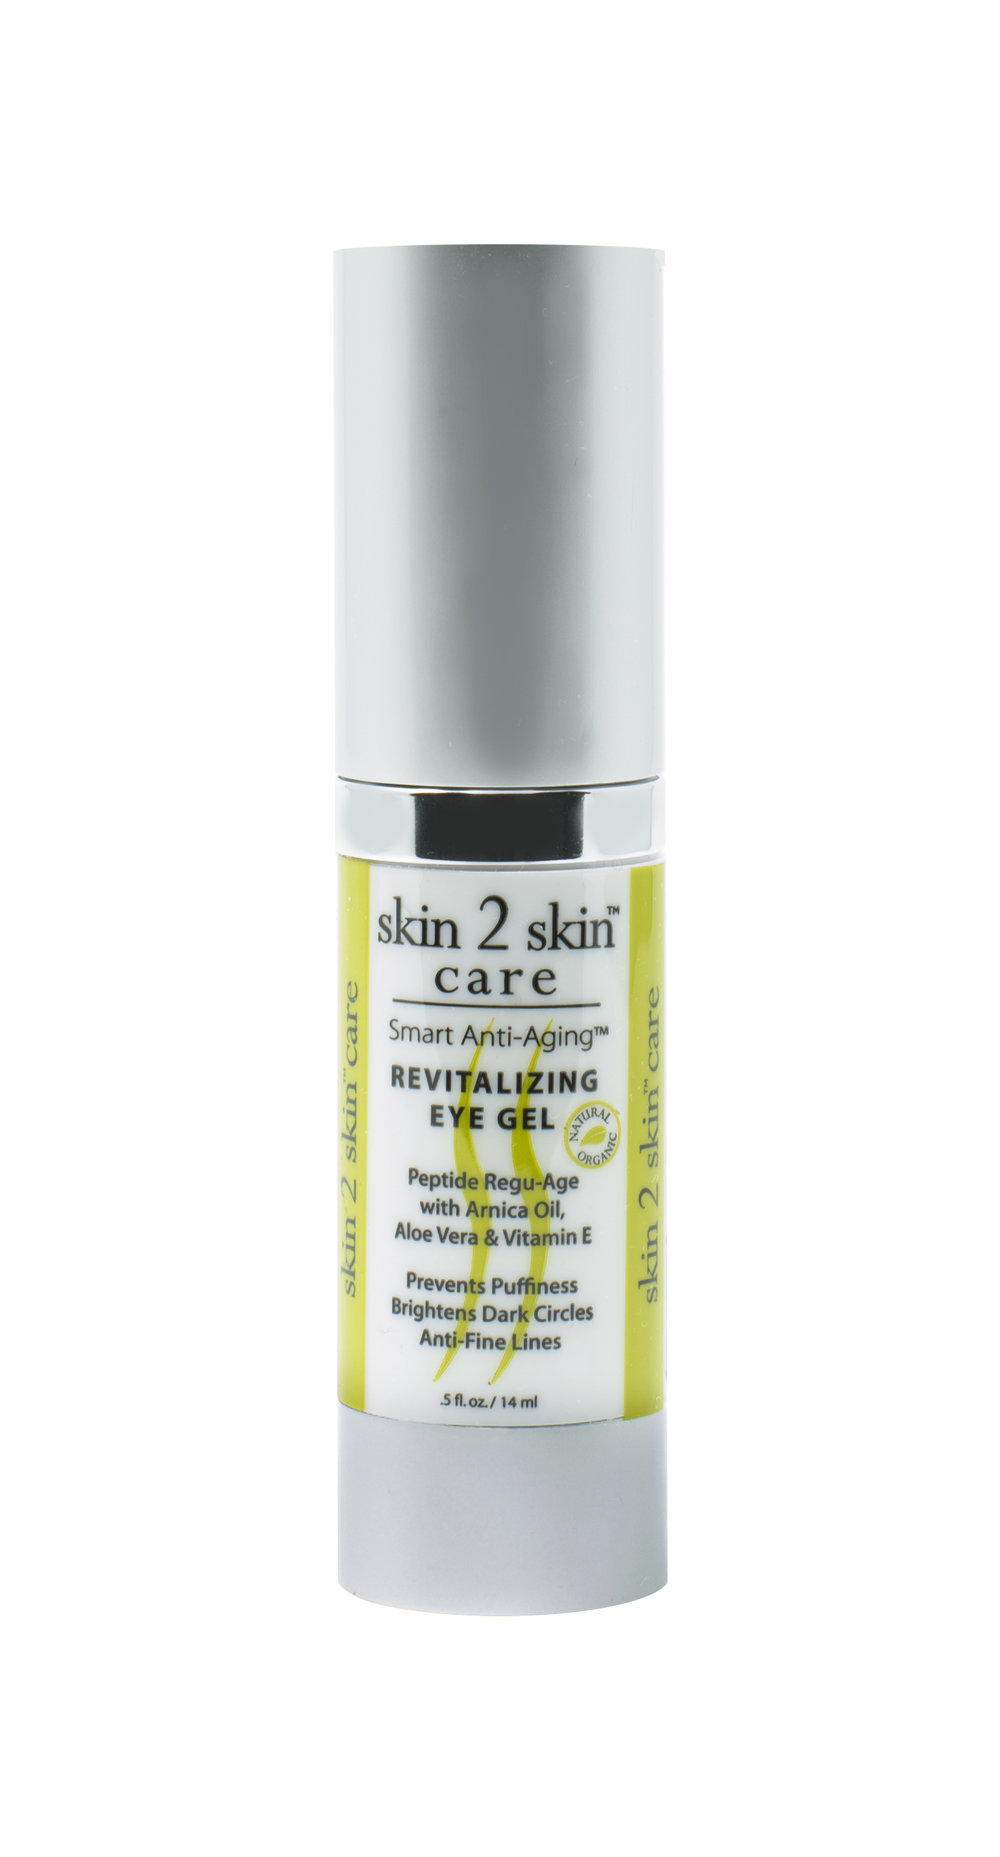 Revitalizing Eye Gel by Skin 2 Skin.jpg